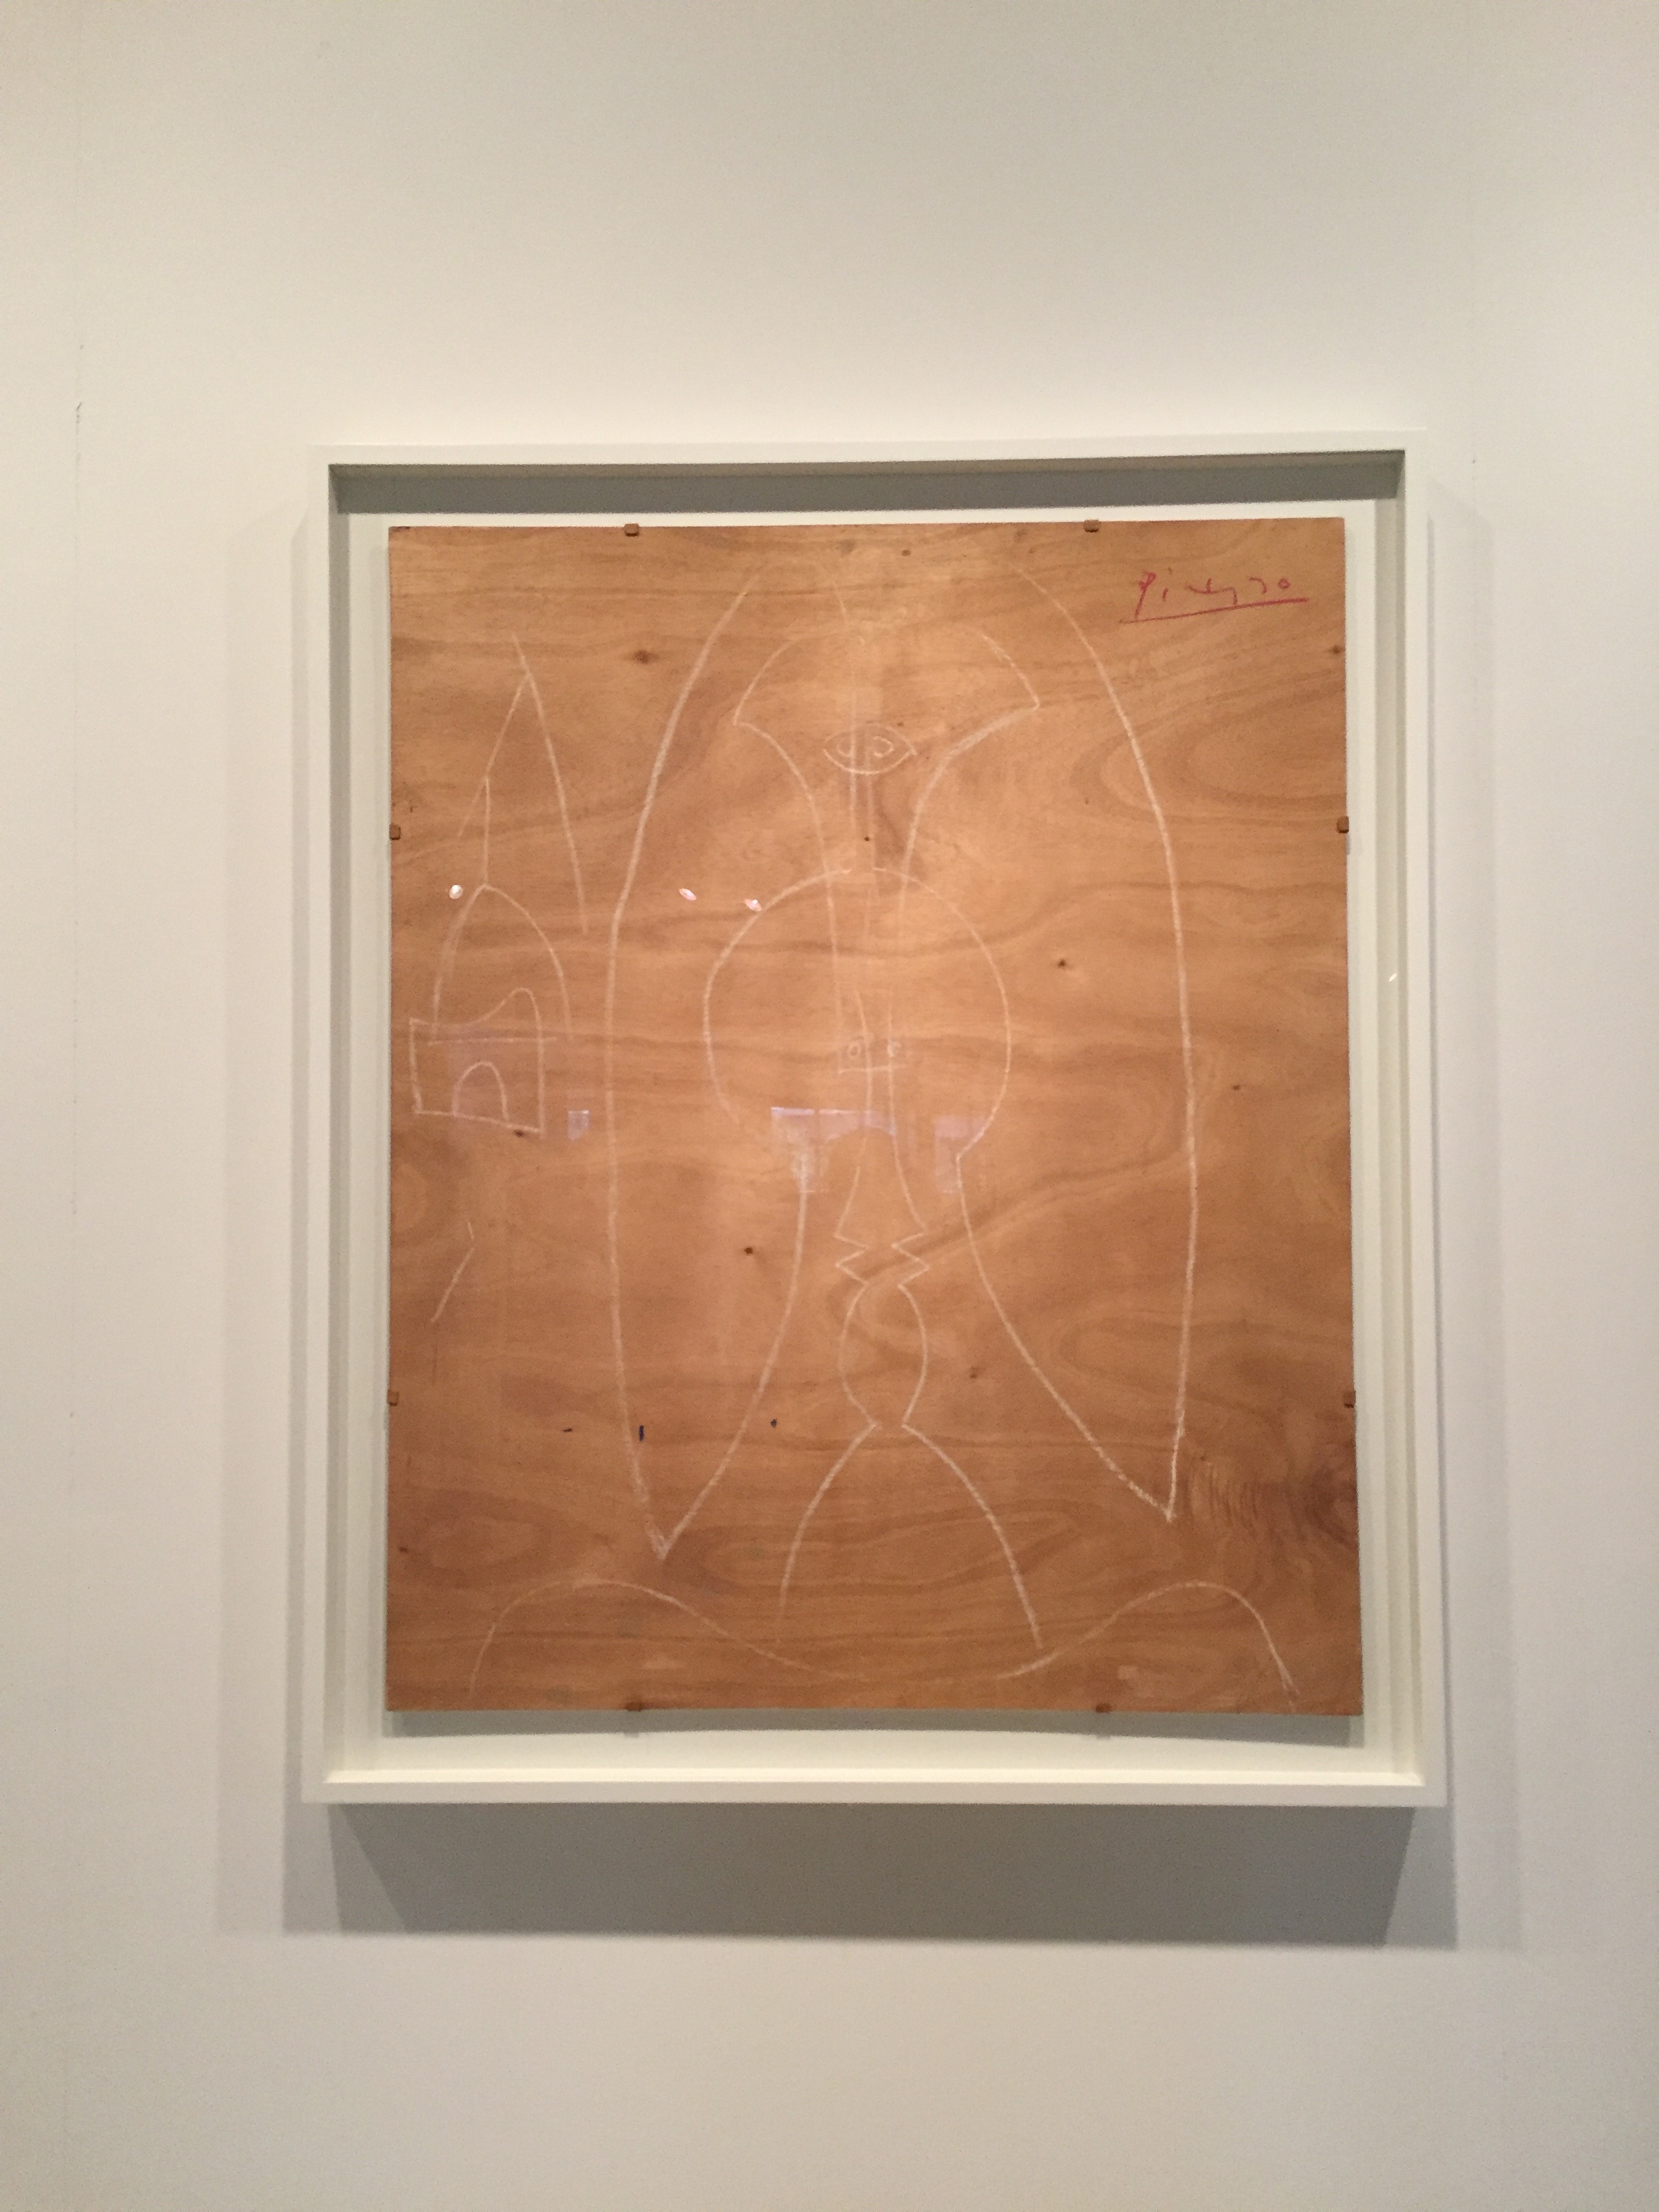 Fascinating Picasso sketch on plywood, located in the Art Institute of Chicago.